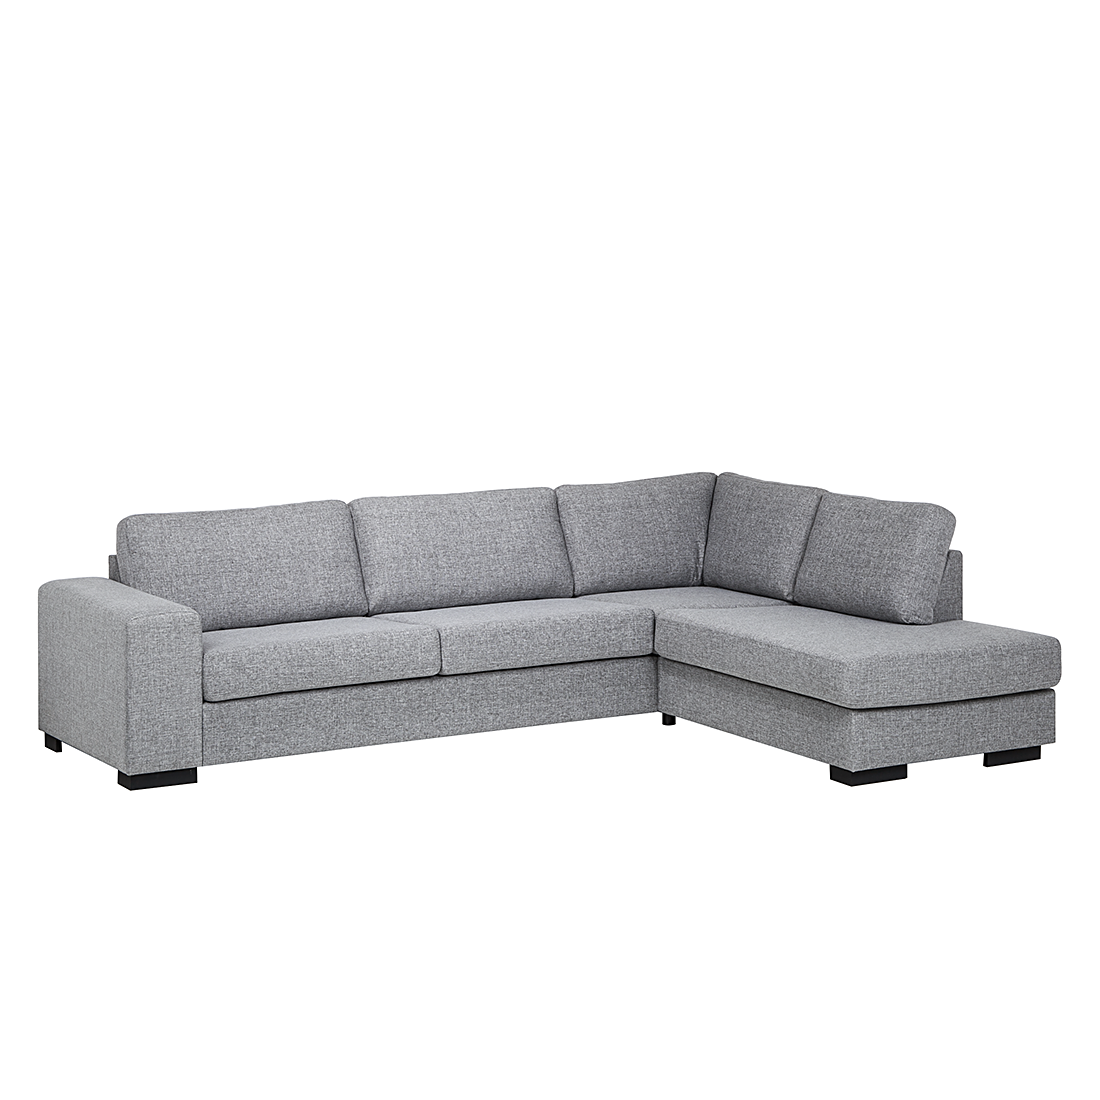 ecksofa strukturstoff grau 3 sitzer sofa couch eckcouch polsterecke neu ebay. Black Bedroom Furniture Sets. Home Design Ideas